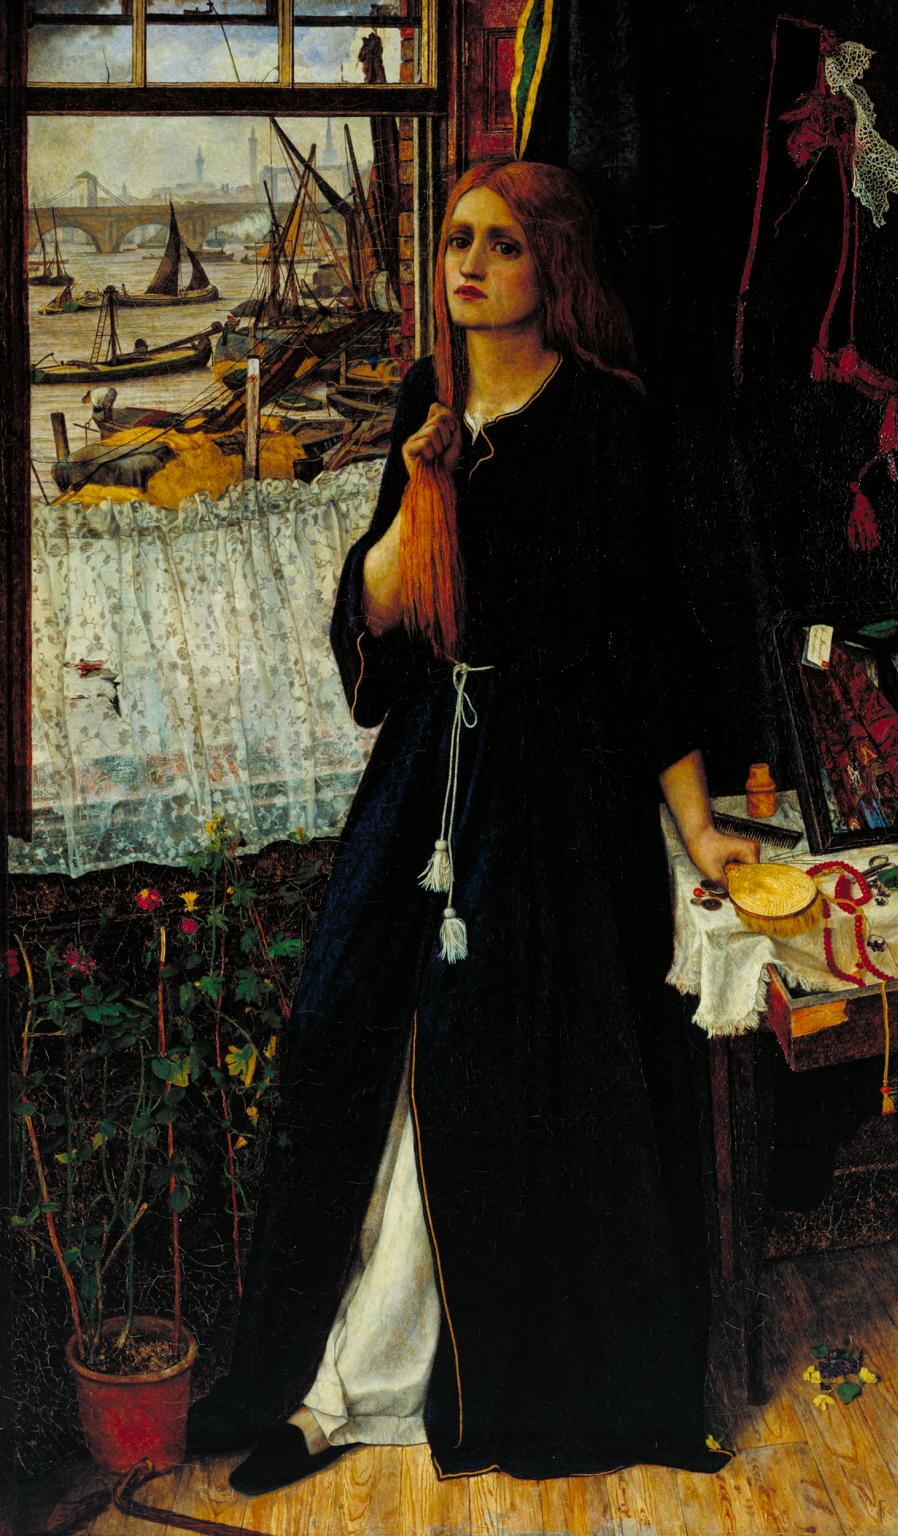 Thoughts of the Past exhibited 1859 by John Roddam Spencer Stanhope 1829-1908